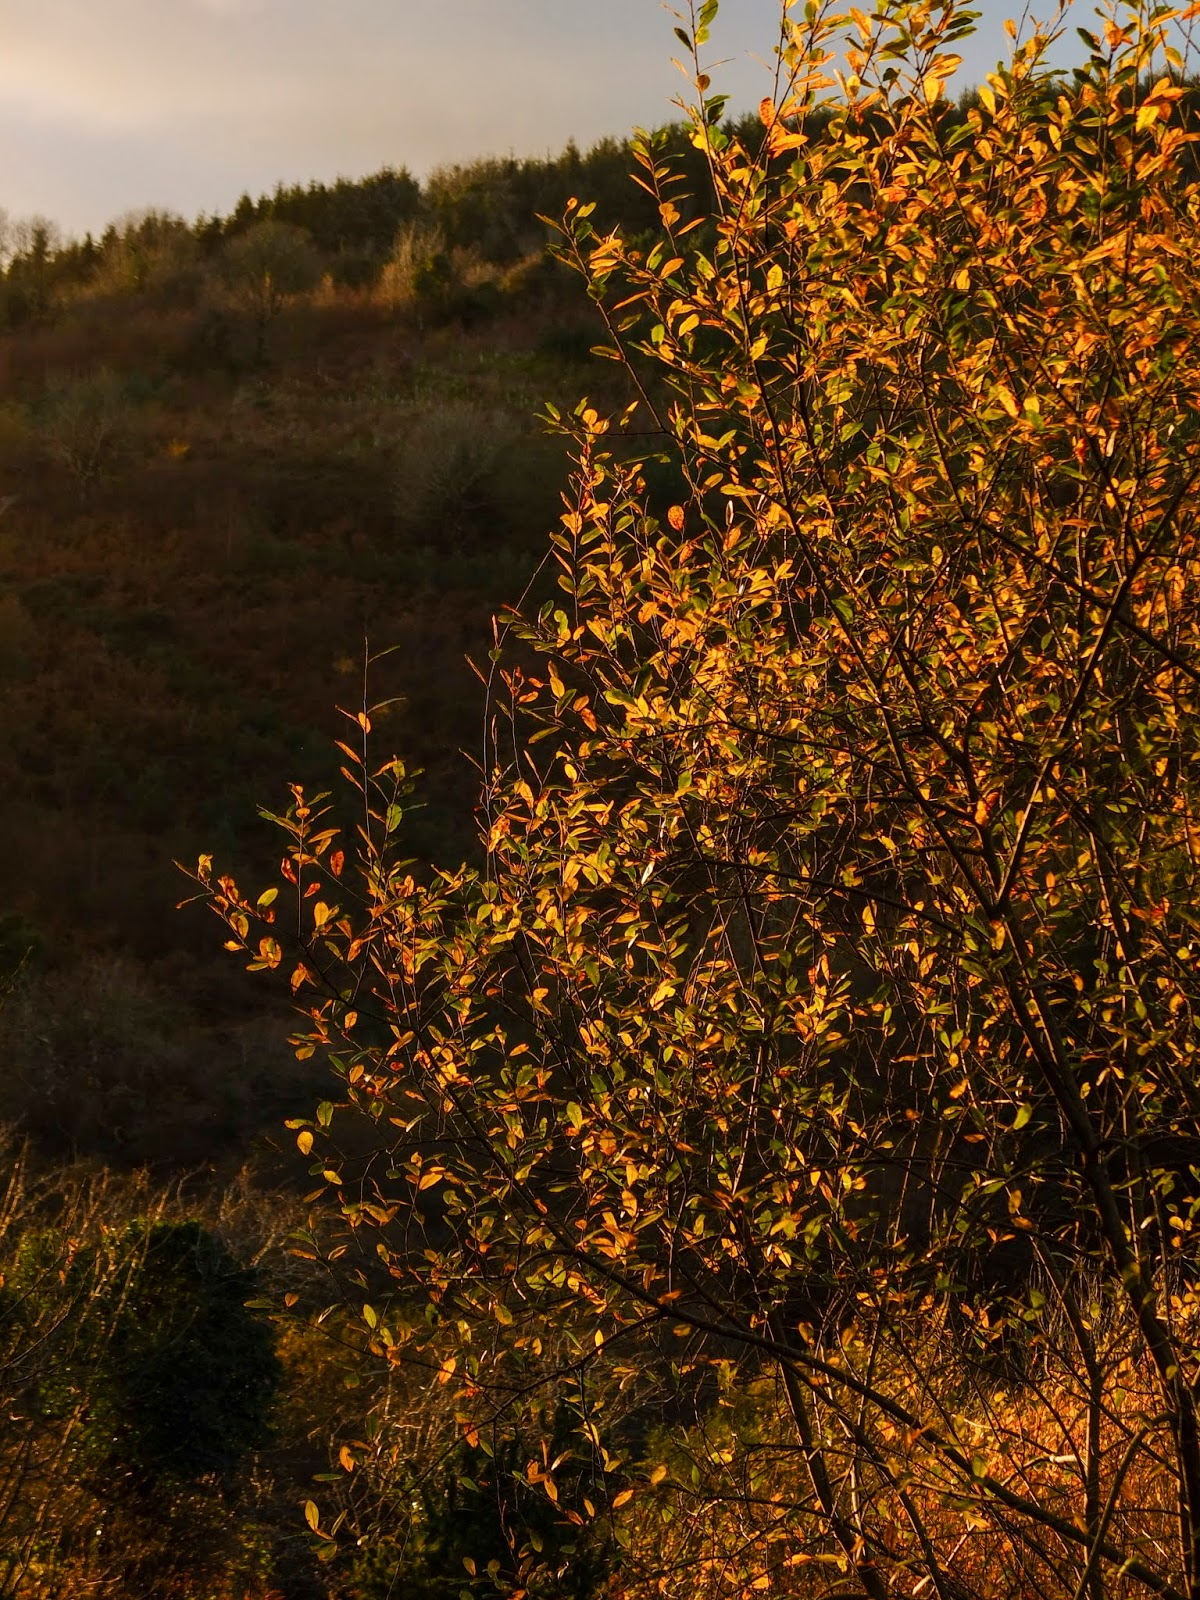 A willow tree covered in yellow leaves shimmering during golden hour.